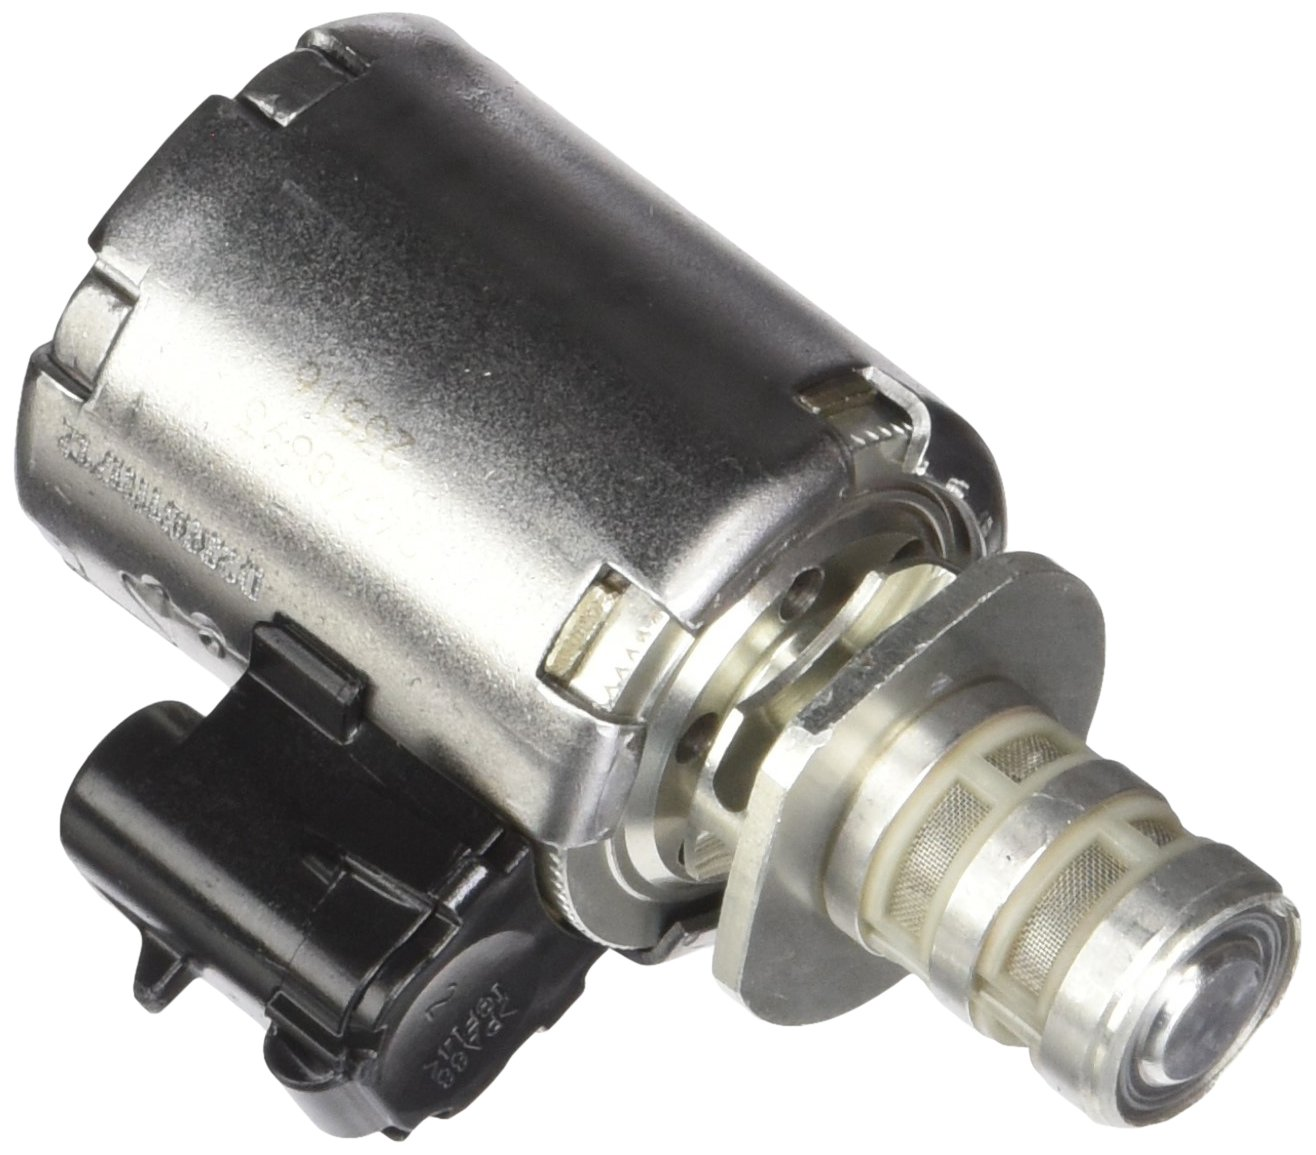 763bcfe8fedf Cheap Vw Transmission Solenoid, find Vw Transmission Solenoid deals ...